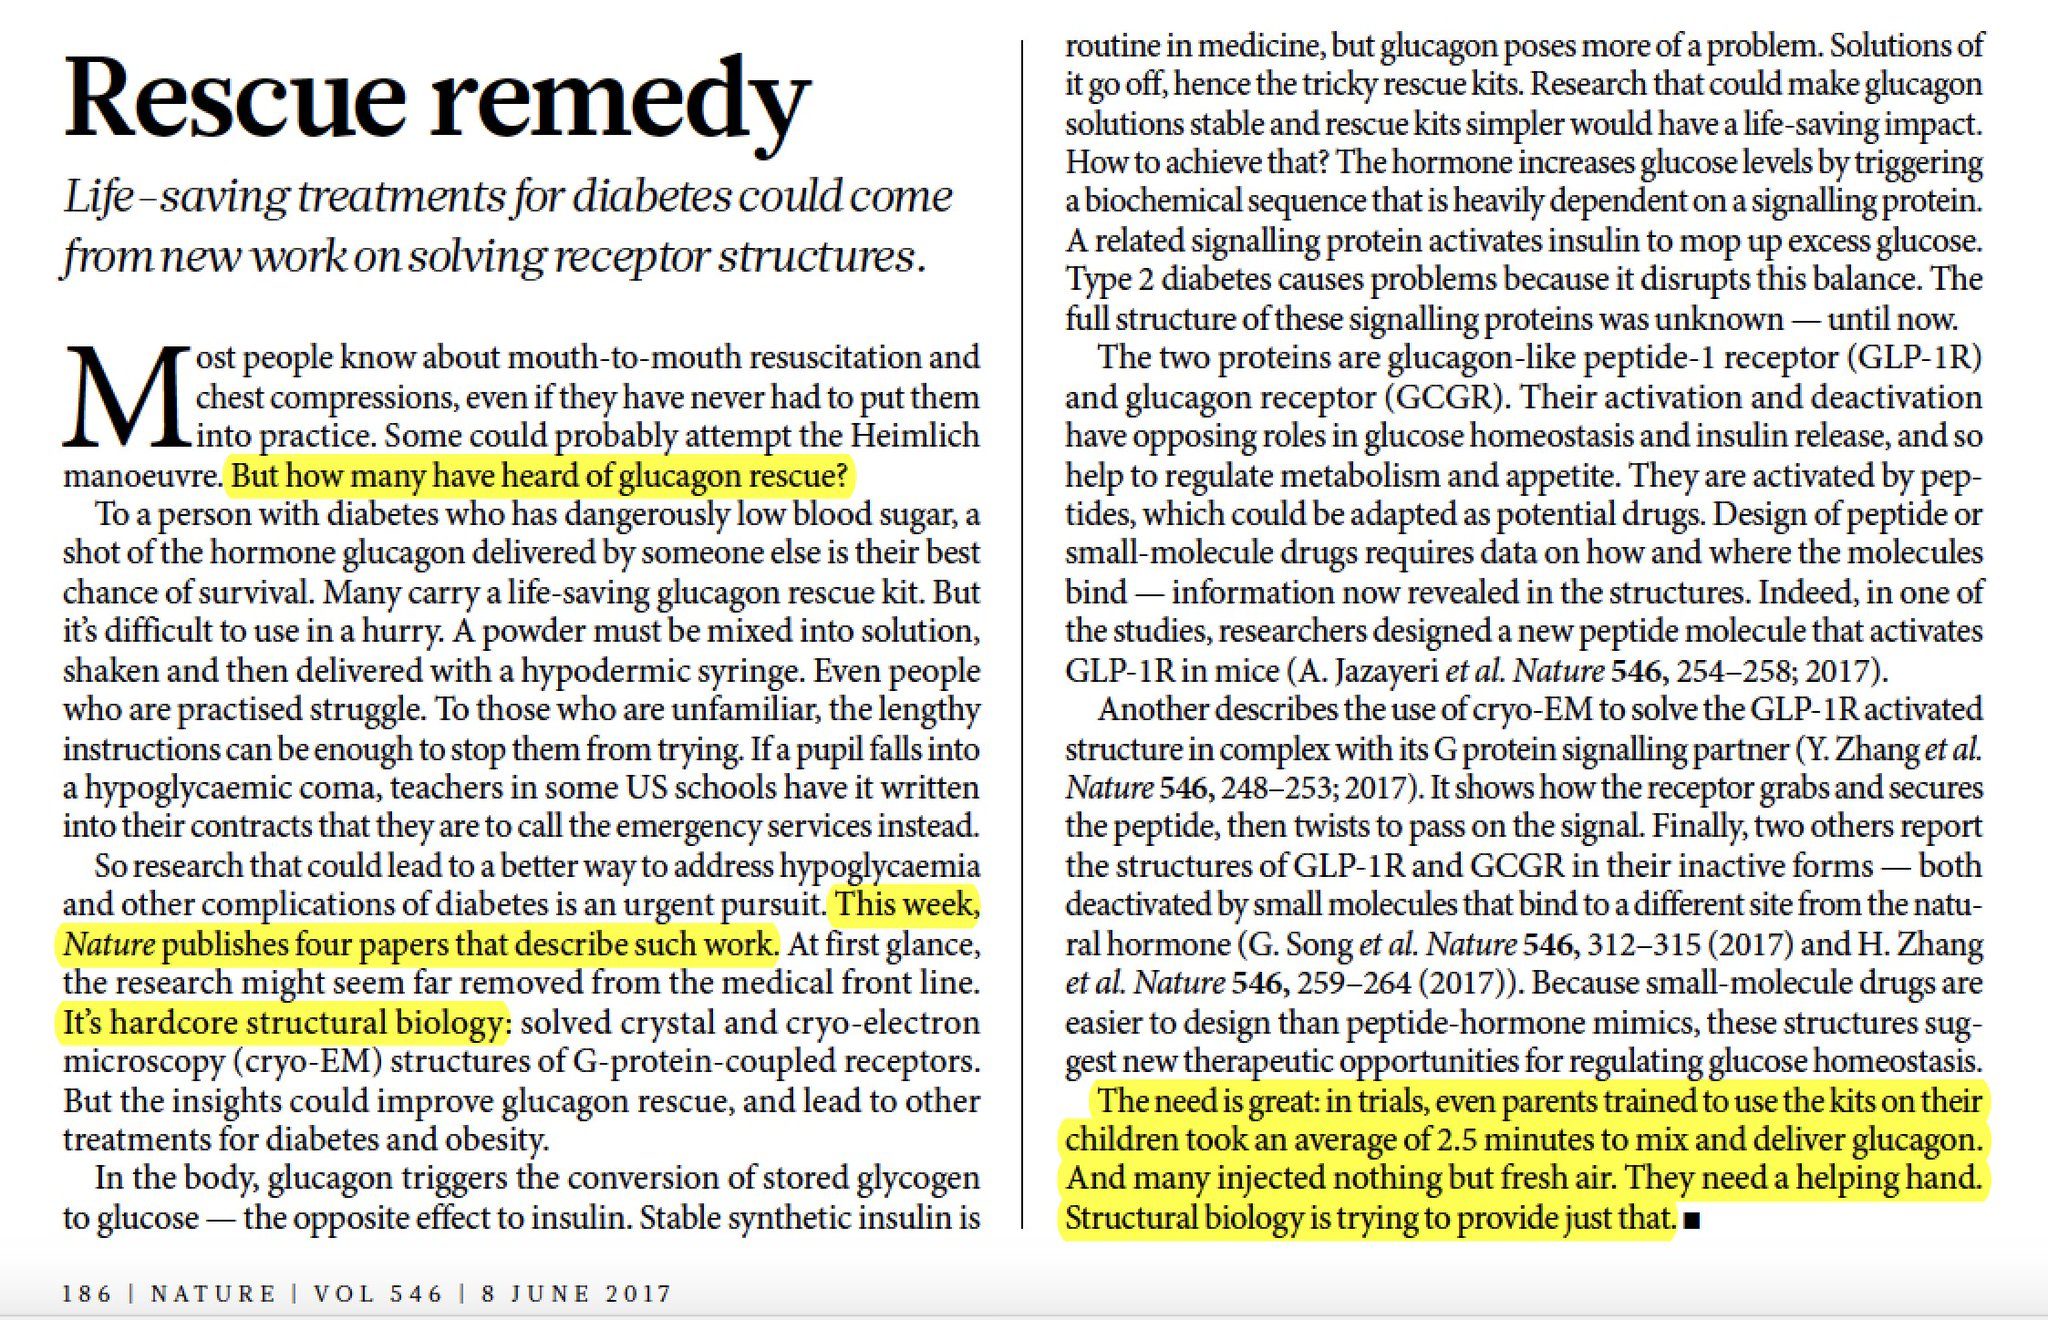 How structural biology can help rescue diabetic hypoglycemia @Nature succinct translation of 4 GLP-1/GCGR papers in current issue #diabetes https://t.co/Kp4u521vHH